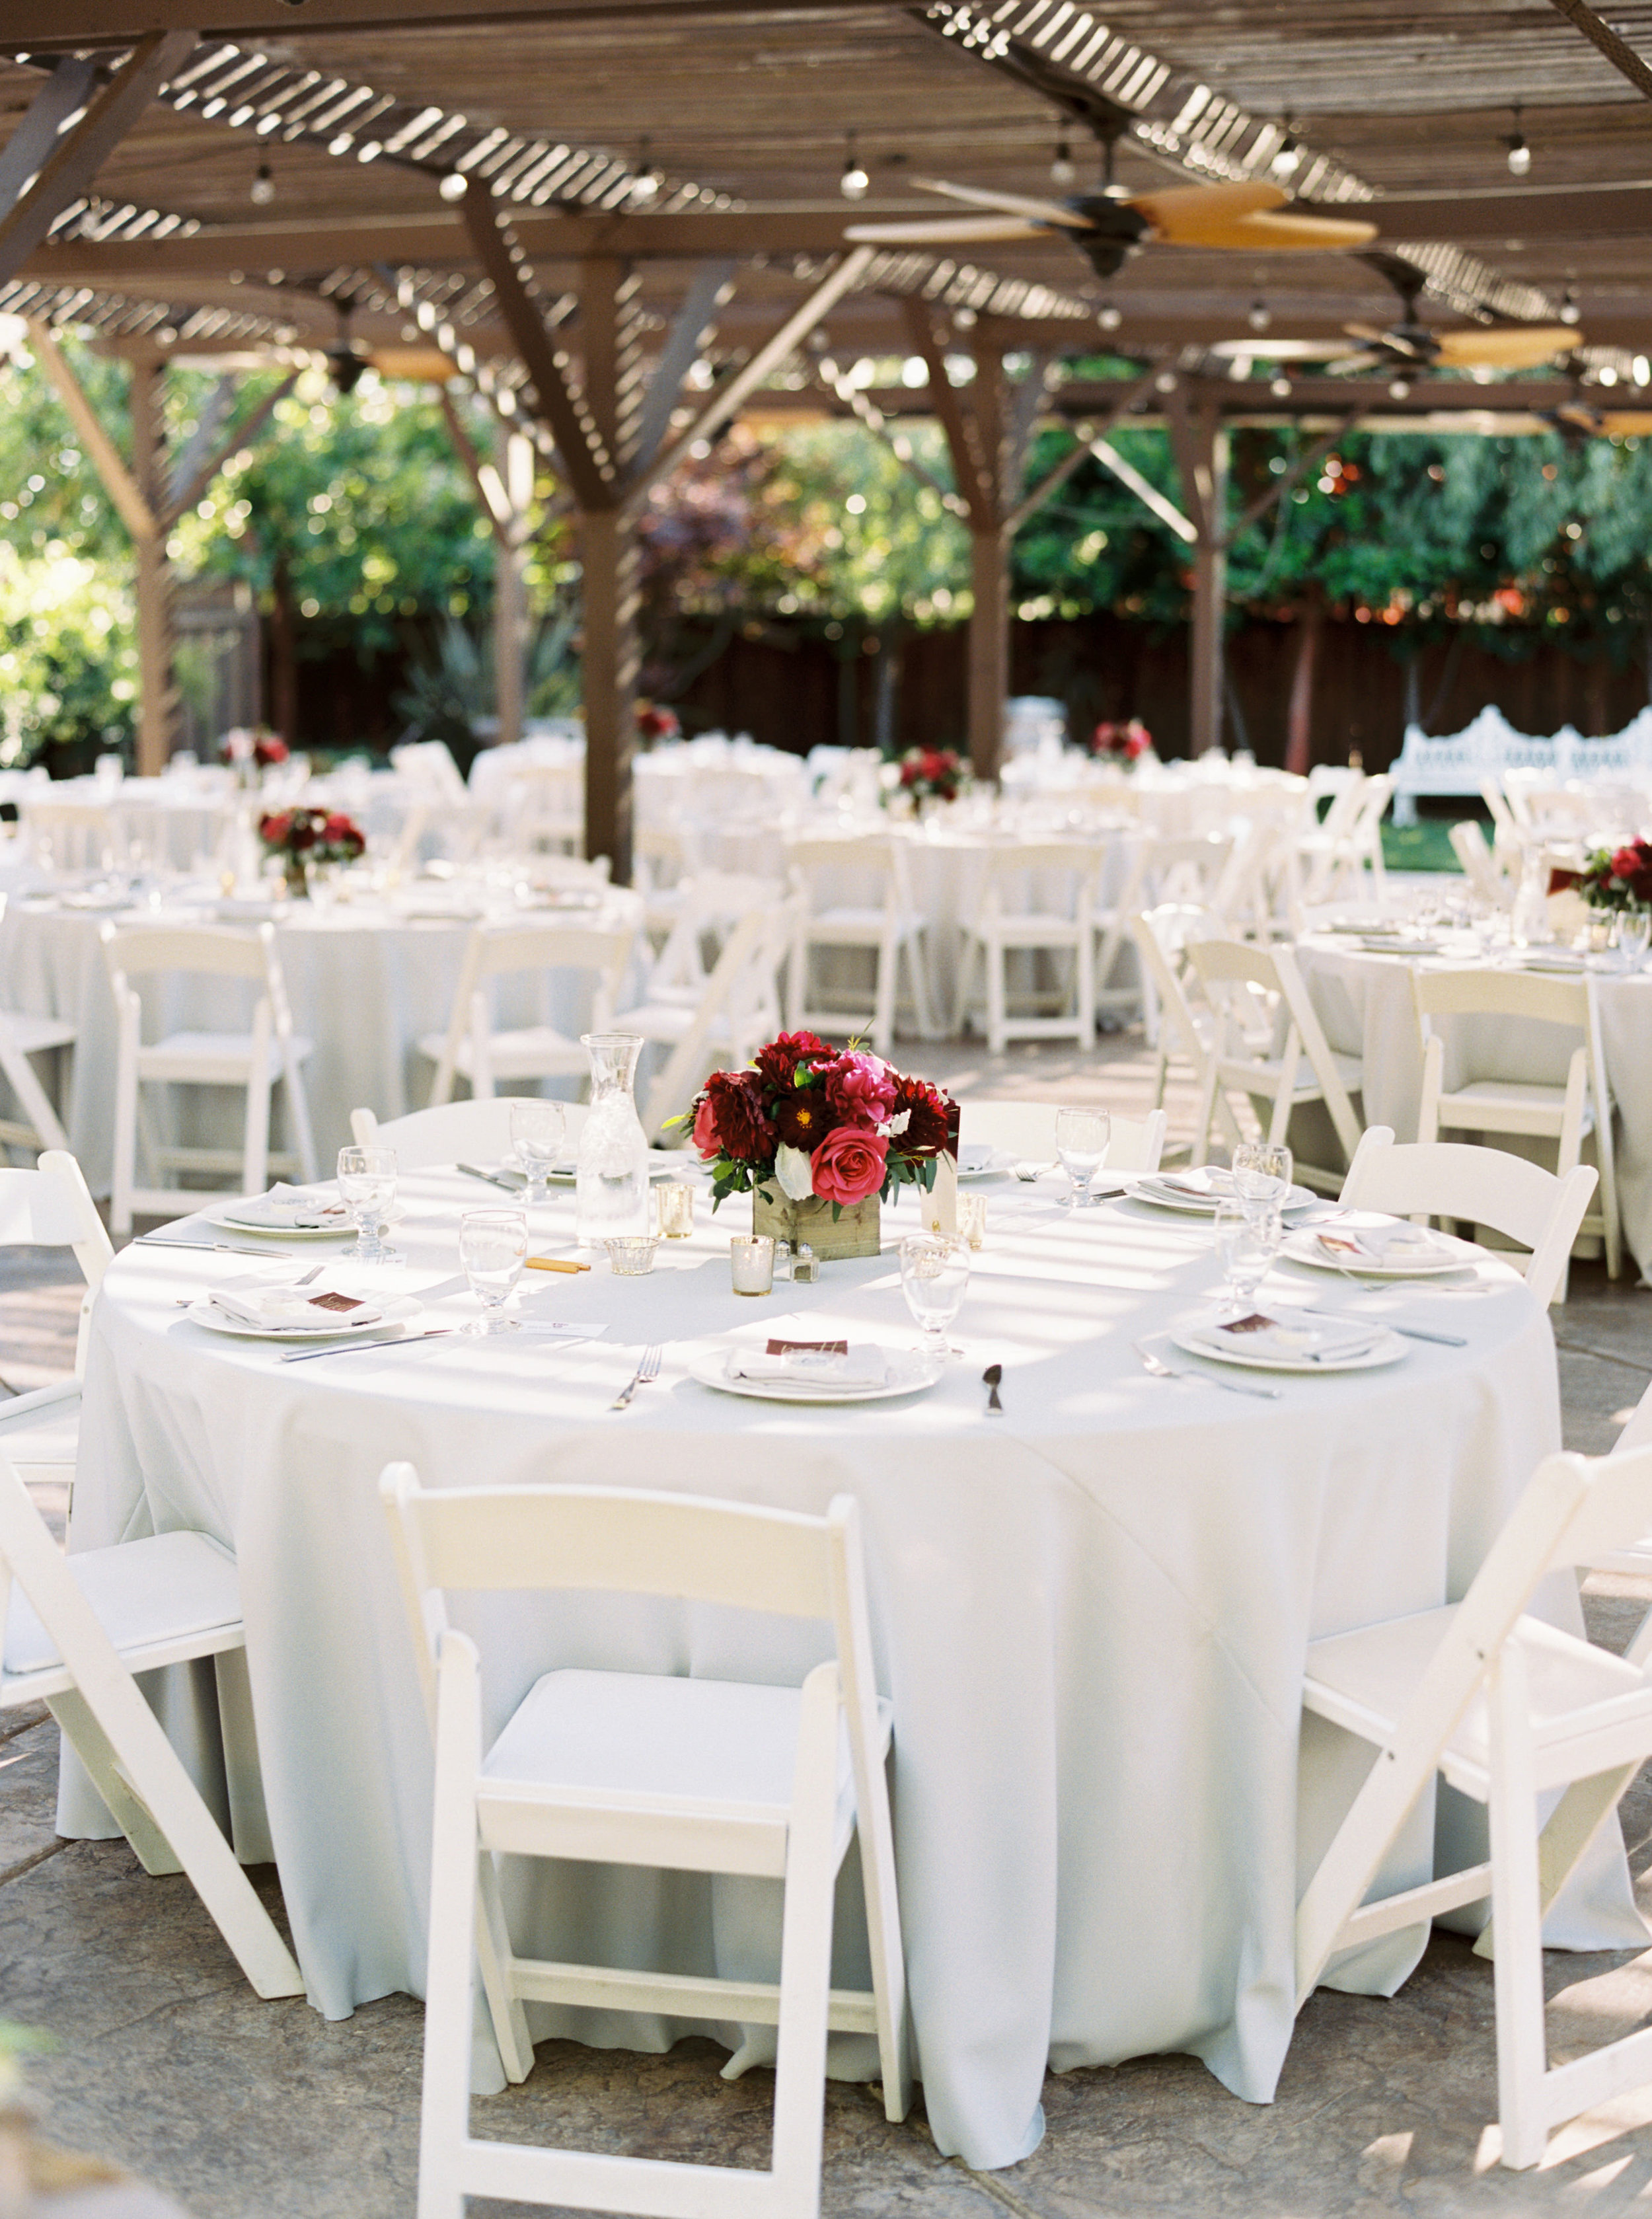 Crooked-vine-winery-wedding-in-livermore-california-23.jpg